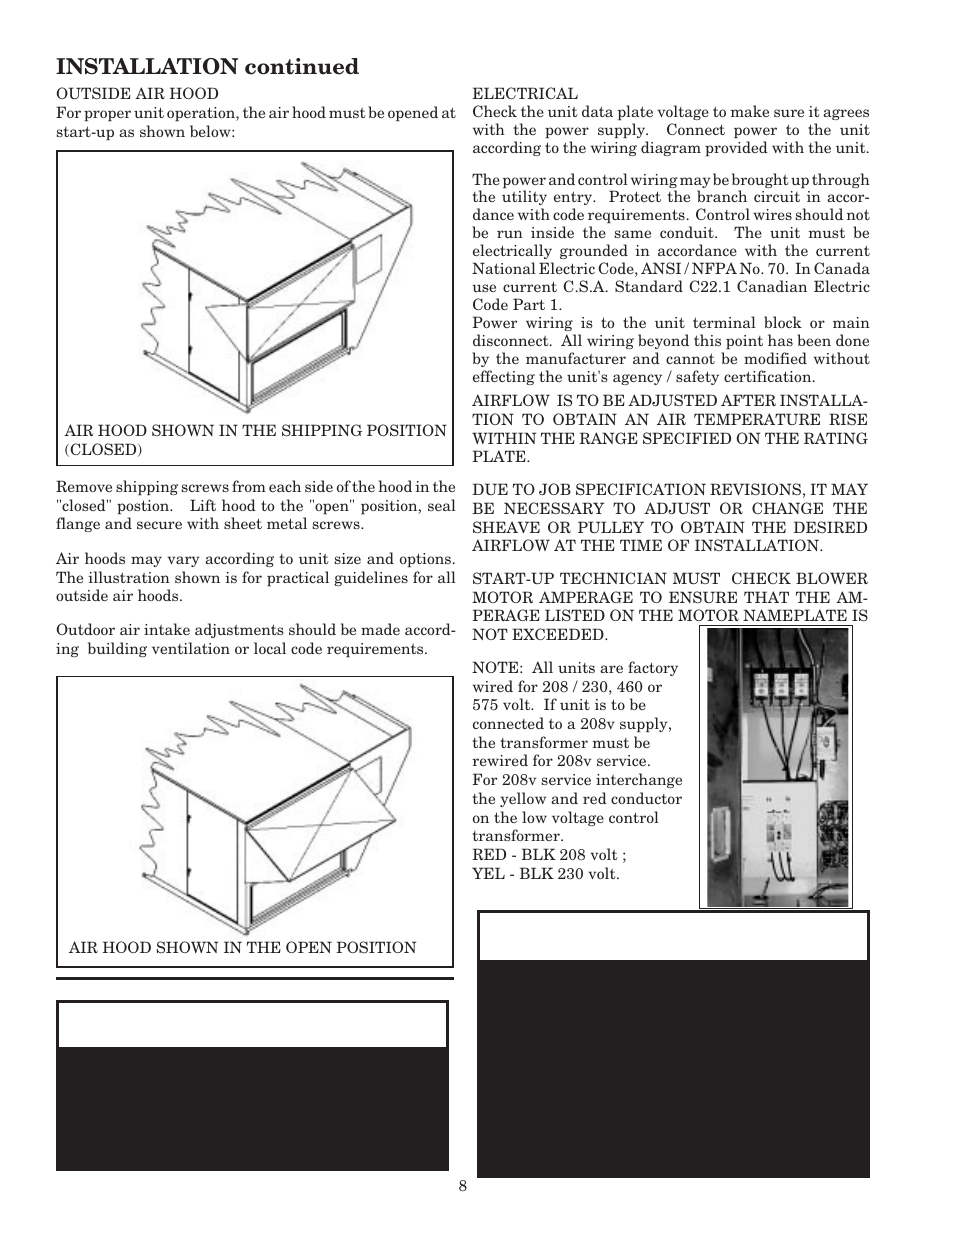 Warning, Caution | AAON RK-60 User Manual | Page 8 / 24 on